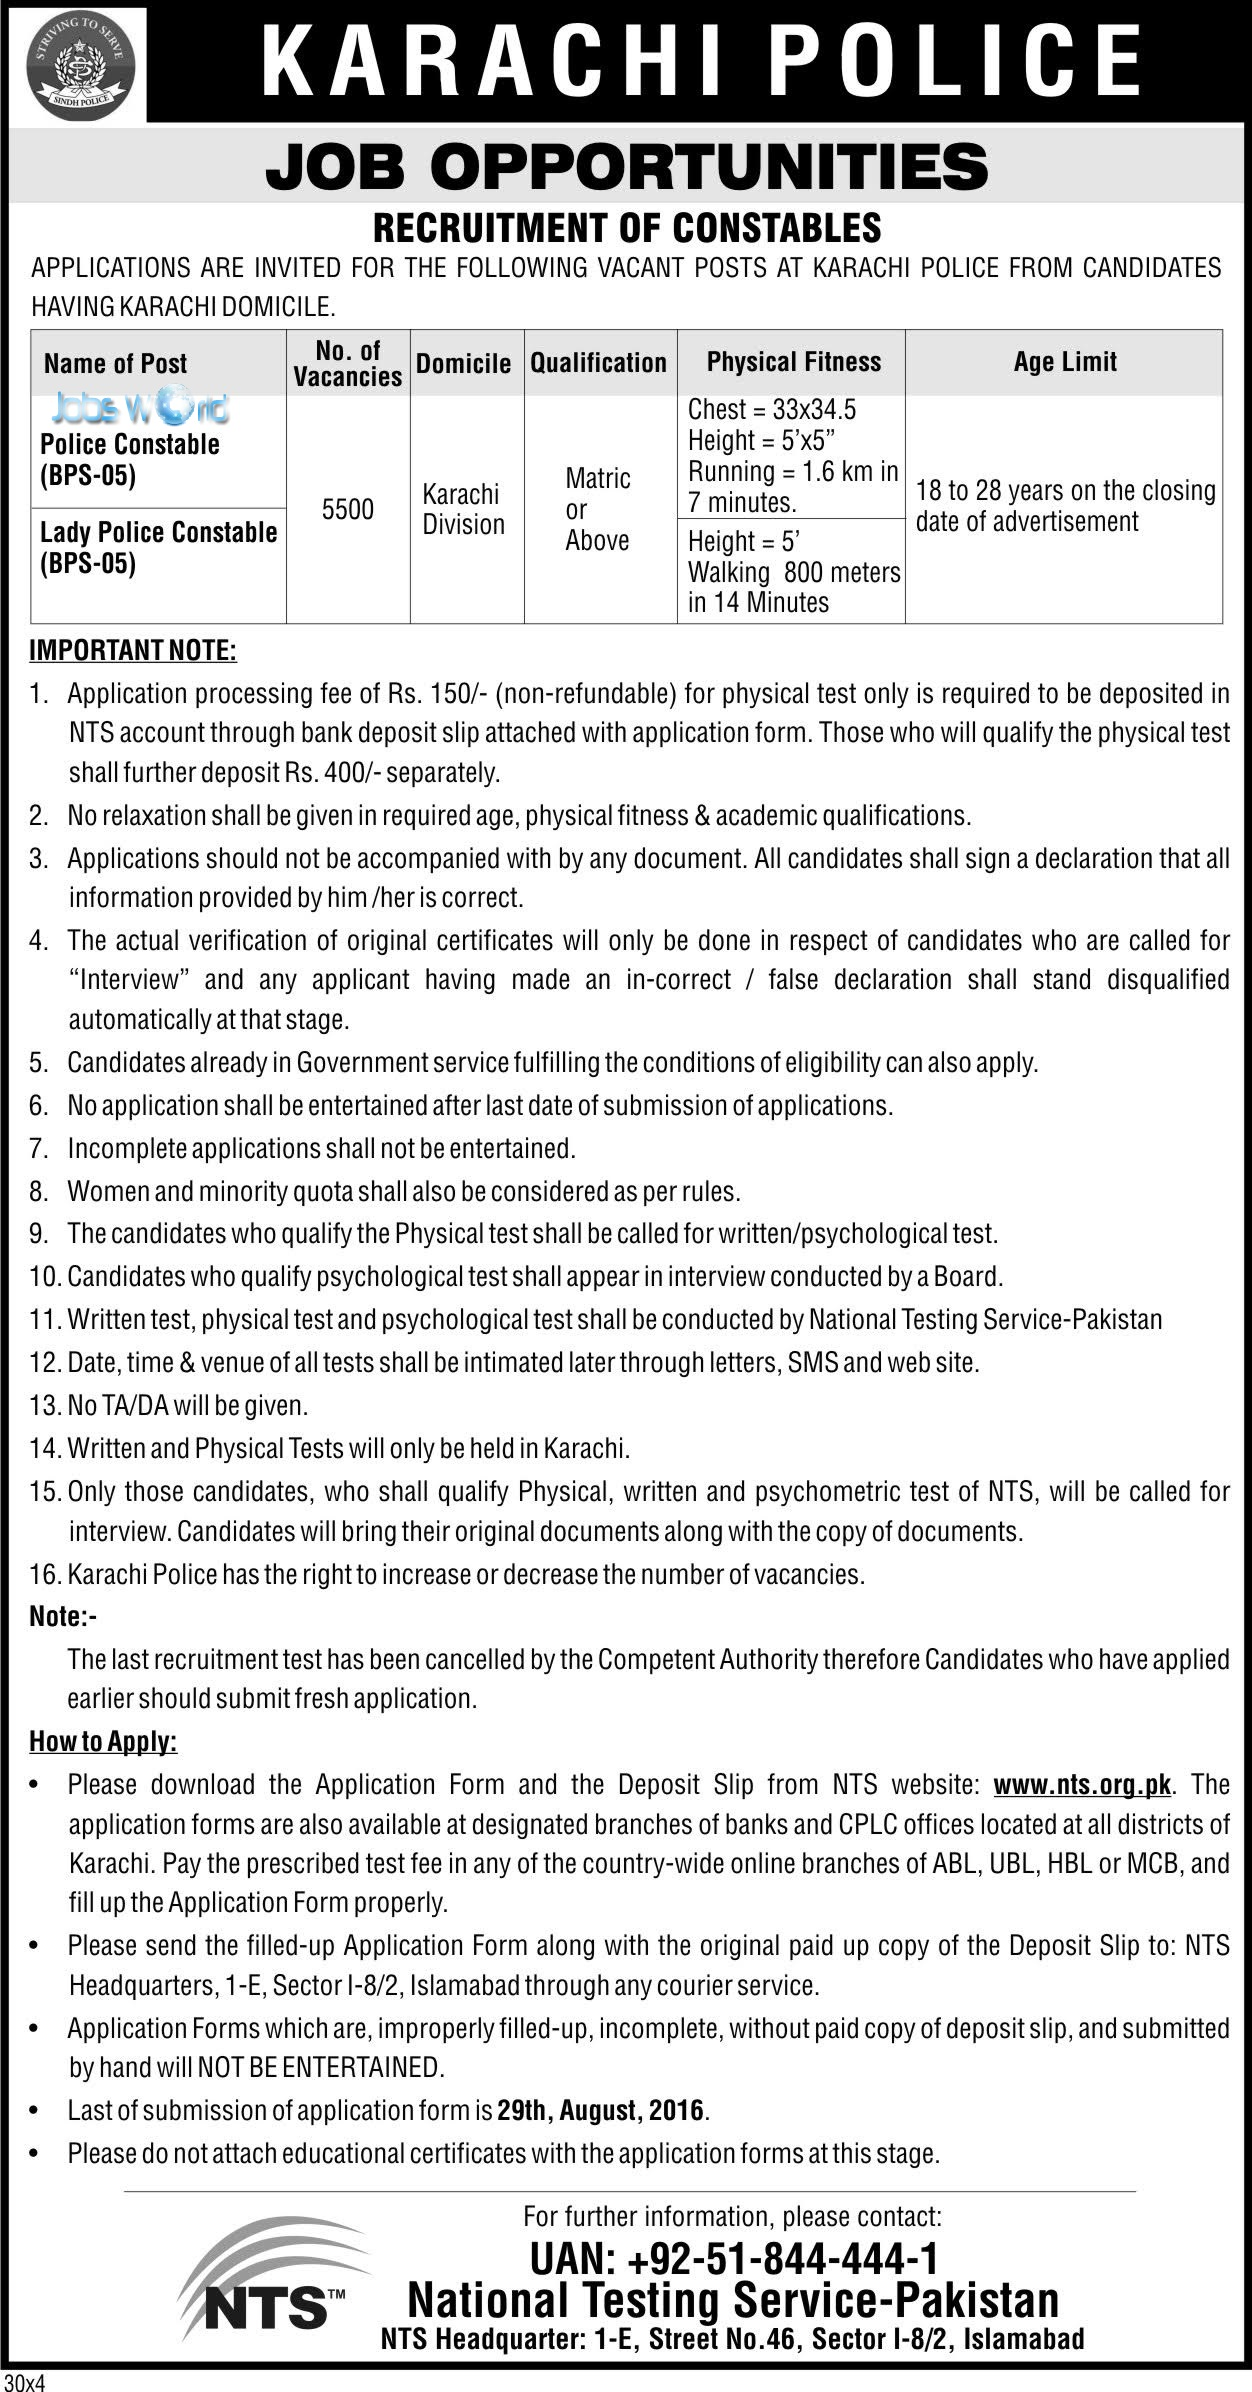 Karachi-Police-Jobs-2016-by-NTS-Constable Job Application Form For Government Of Sindh on government job openings, finance application form, medical application form, government articles, government job application process, government order form, doctor application form, government job vacancies, government events, government job application cover letter, security application form, government training, government newsletter, business application form, government benefits, teaching application form, driver application form, health care application form, government employment, bank application form,